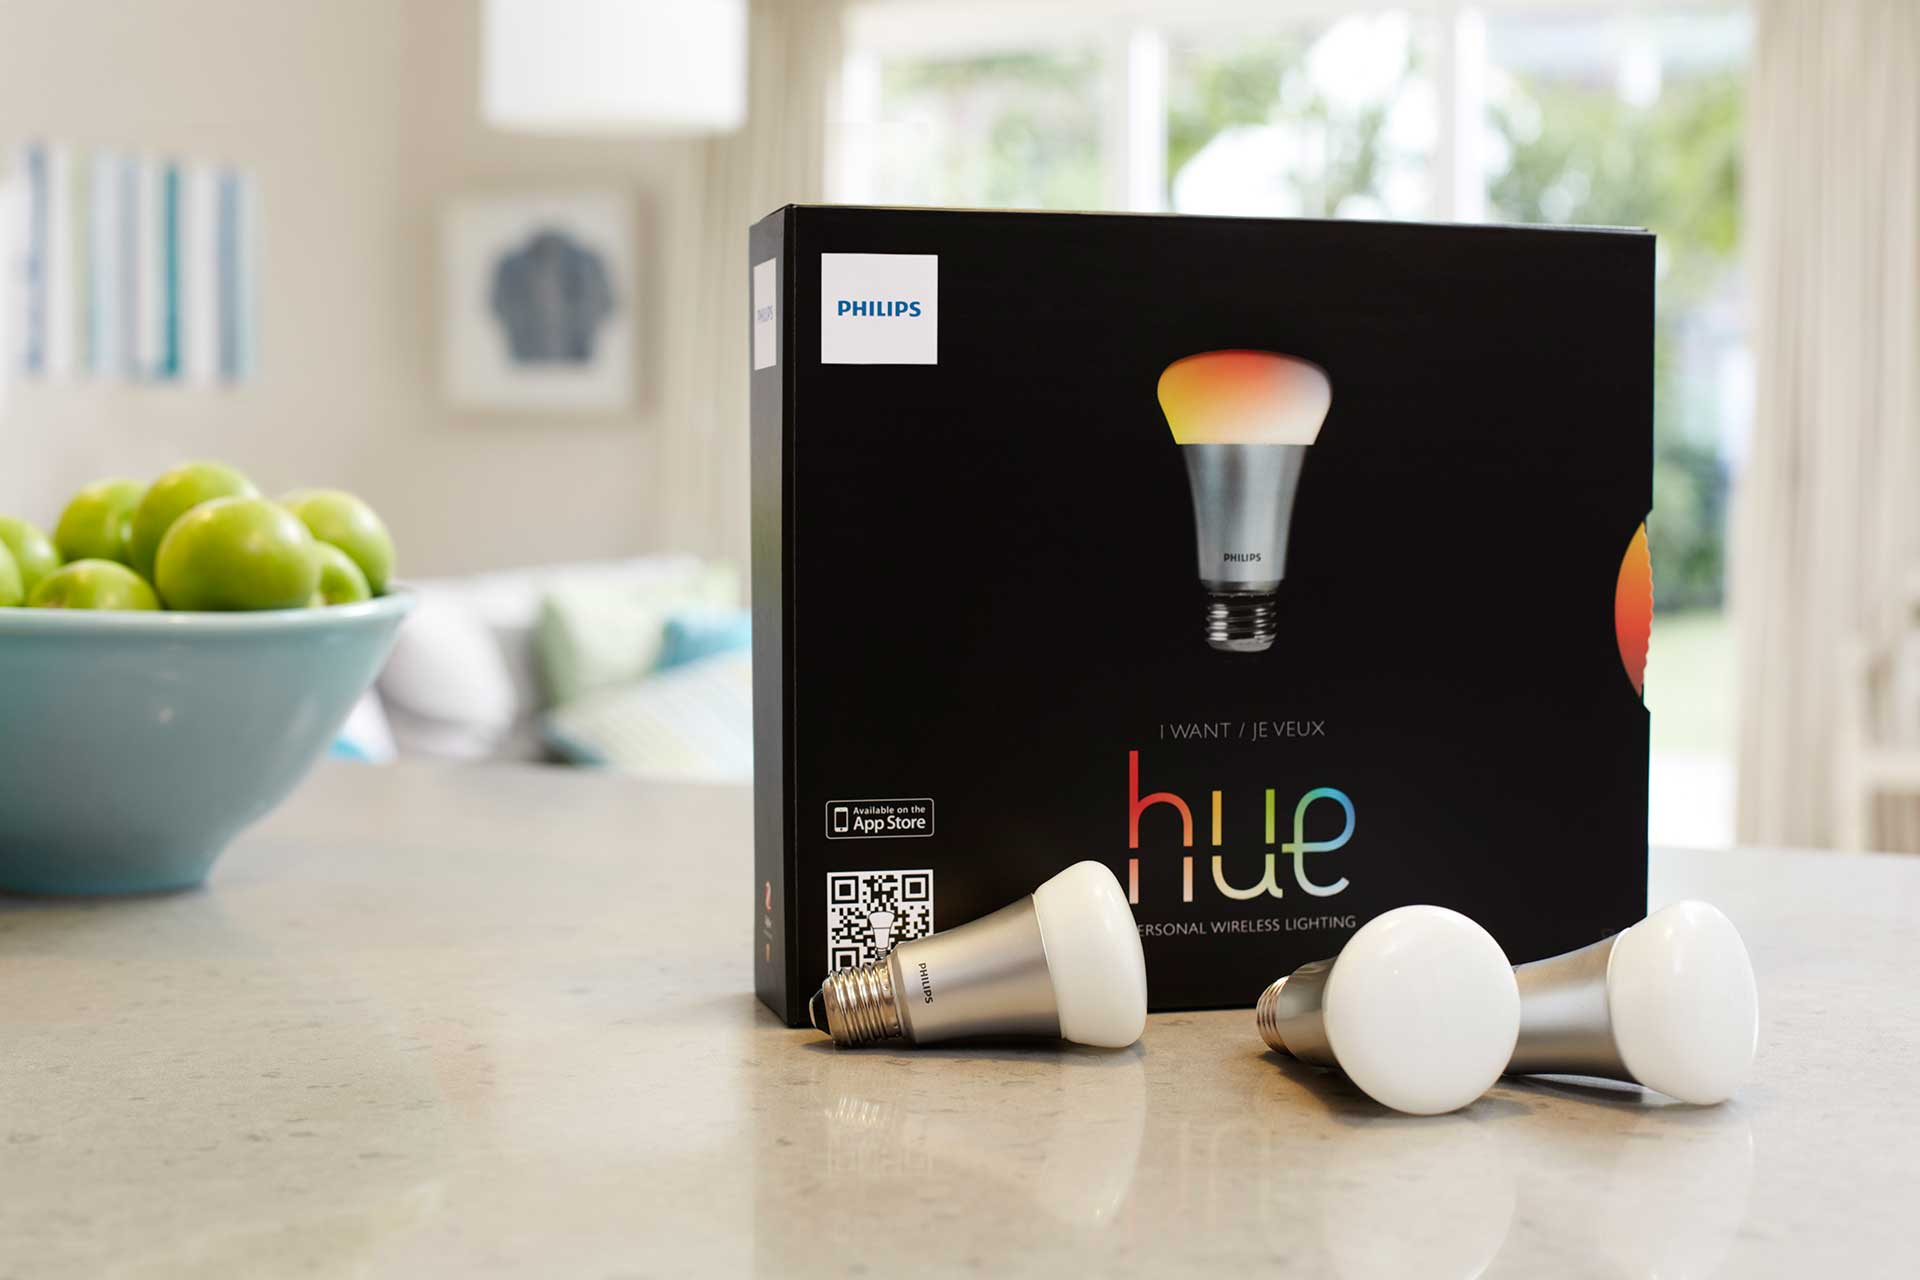 Philips hue the smart lightbulb exclusively hitting apple stores on oct 30 Household led light bulbs